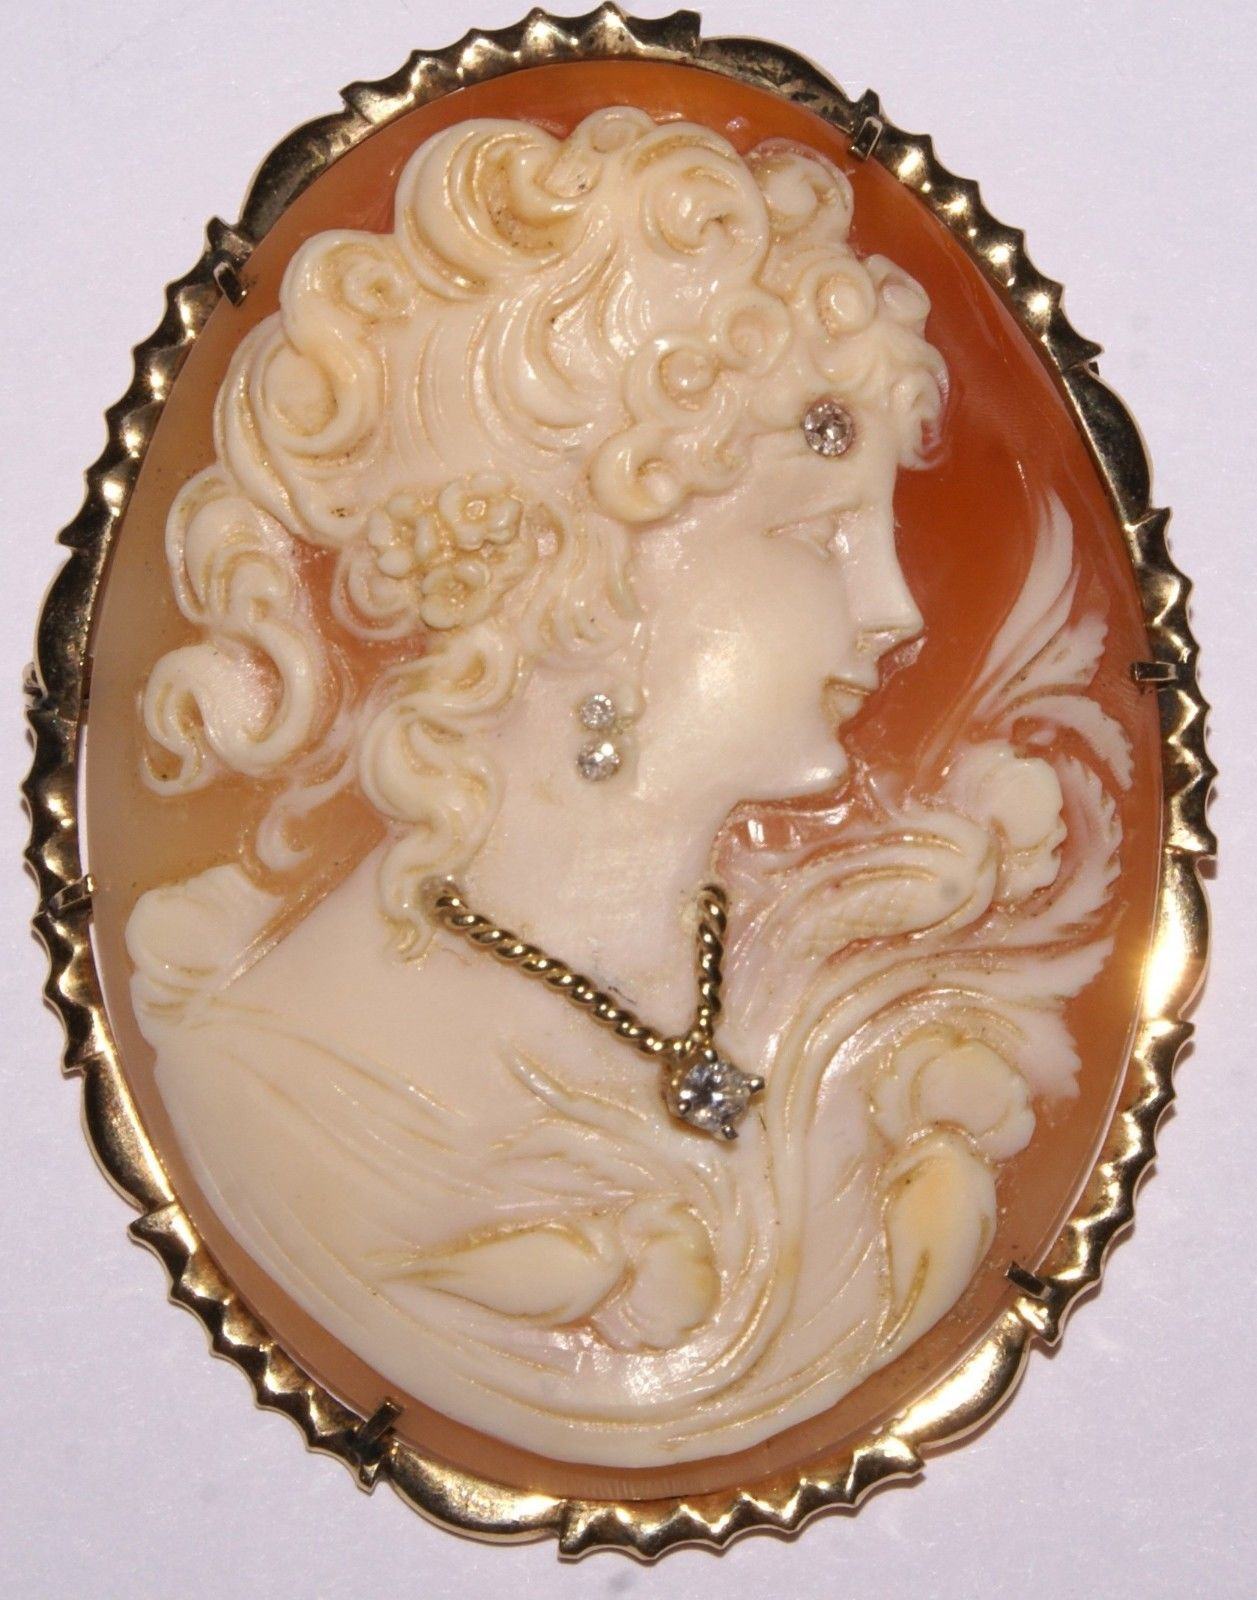 Antique victorian ladies 14k yellow gold cameo pendant brooch w 4 antique victorian ladies 14k yellow gold cameo pendant brooch w 4 diamonds ebay mozeypictures Choice Image